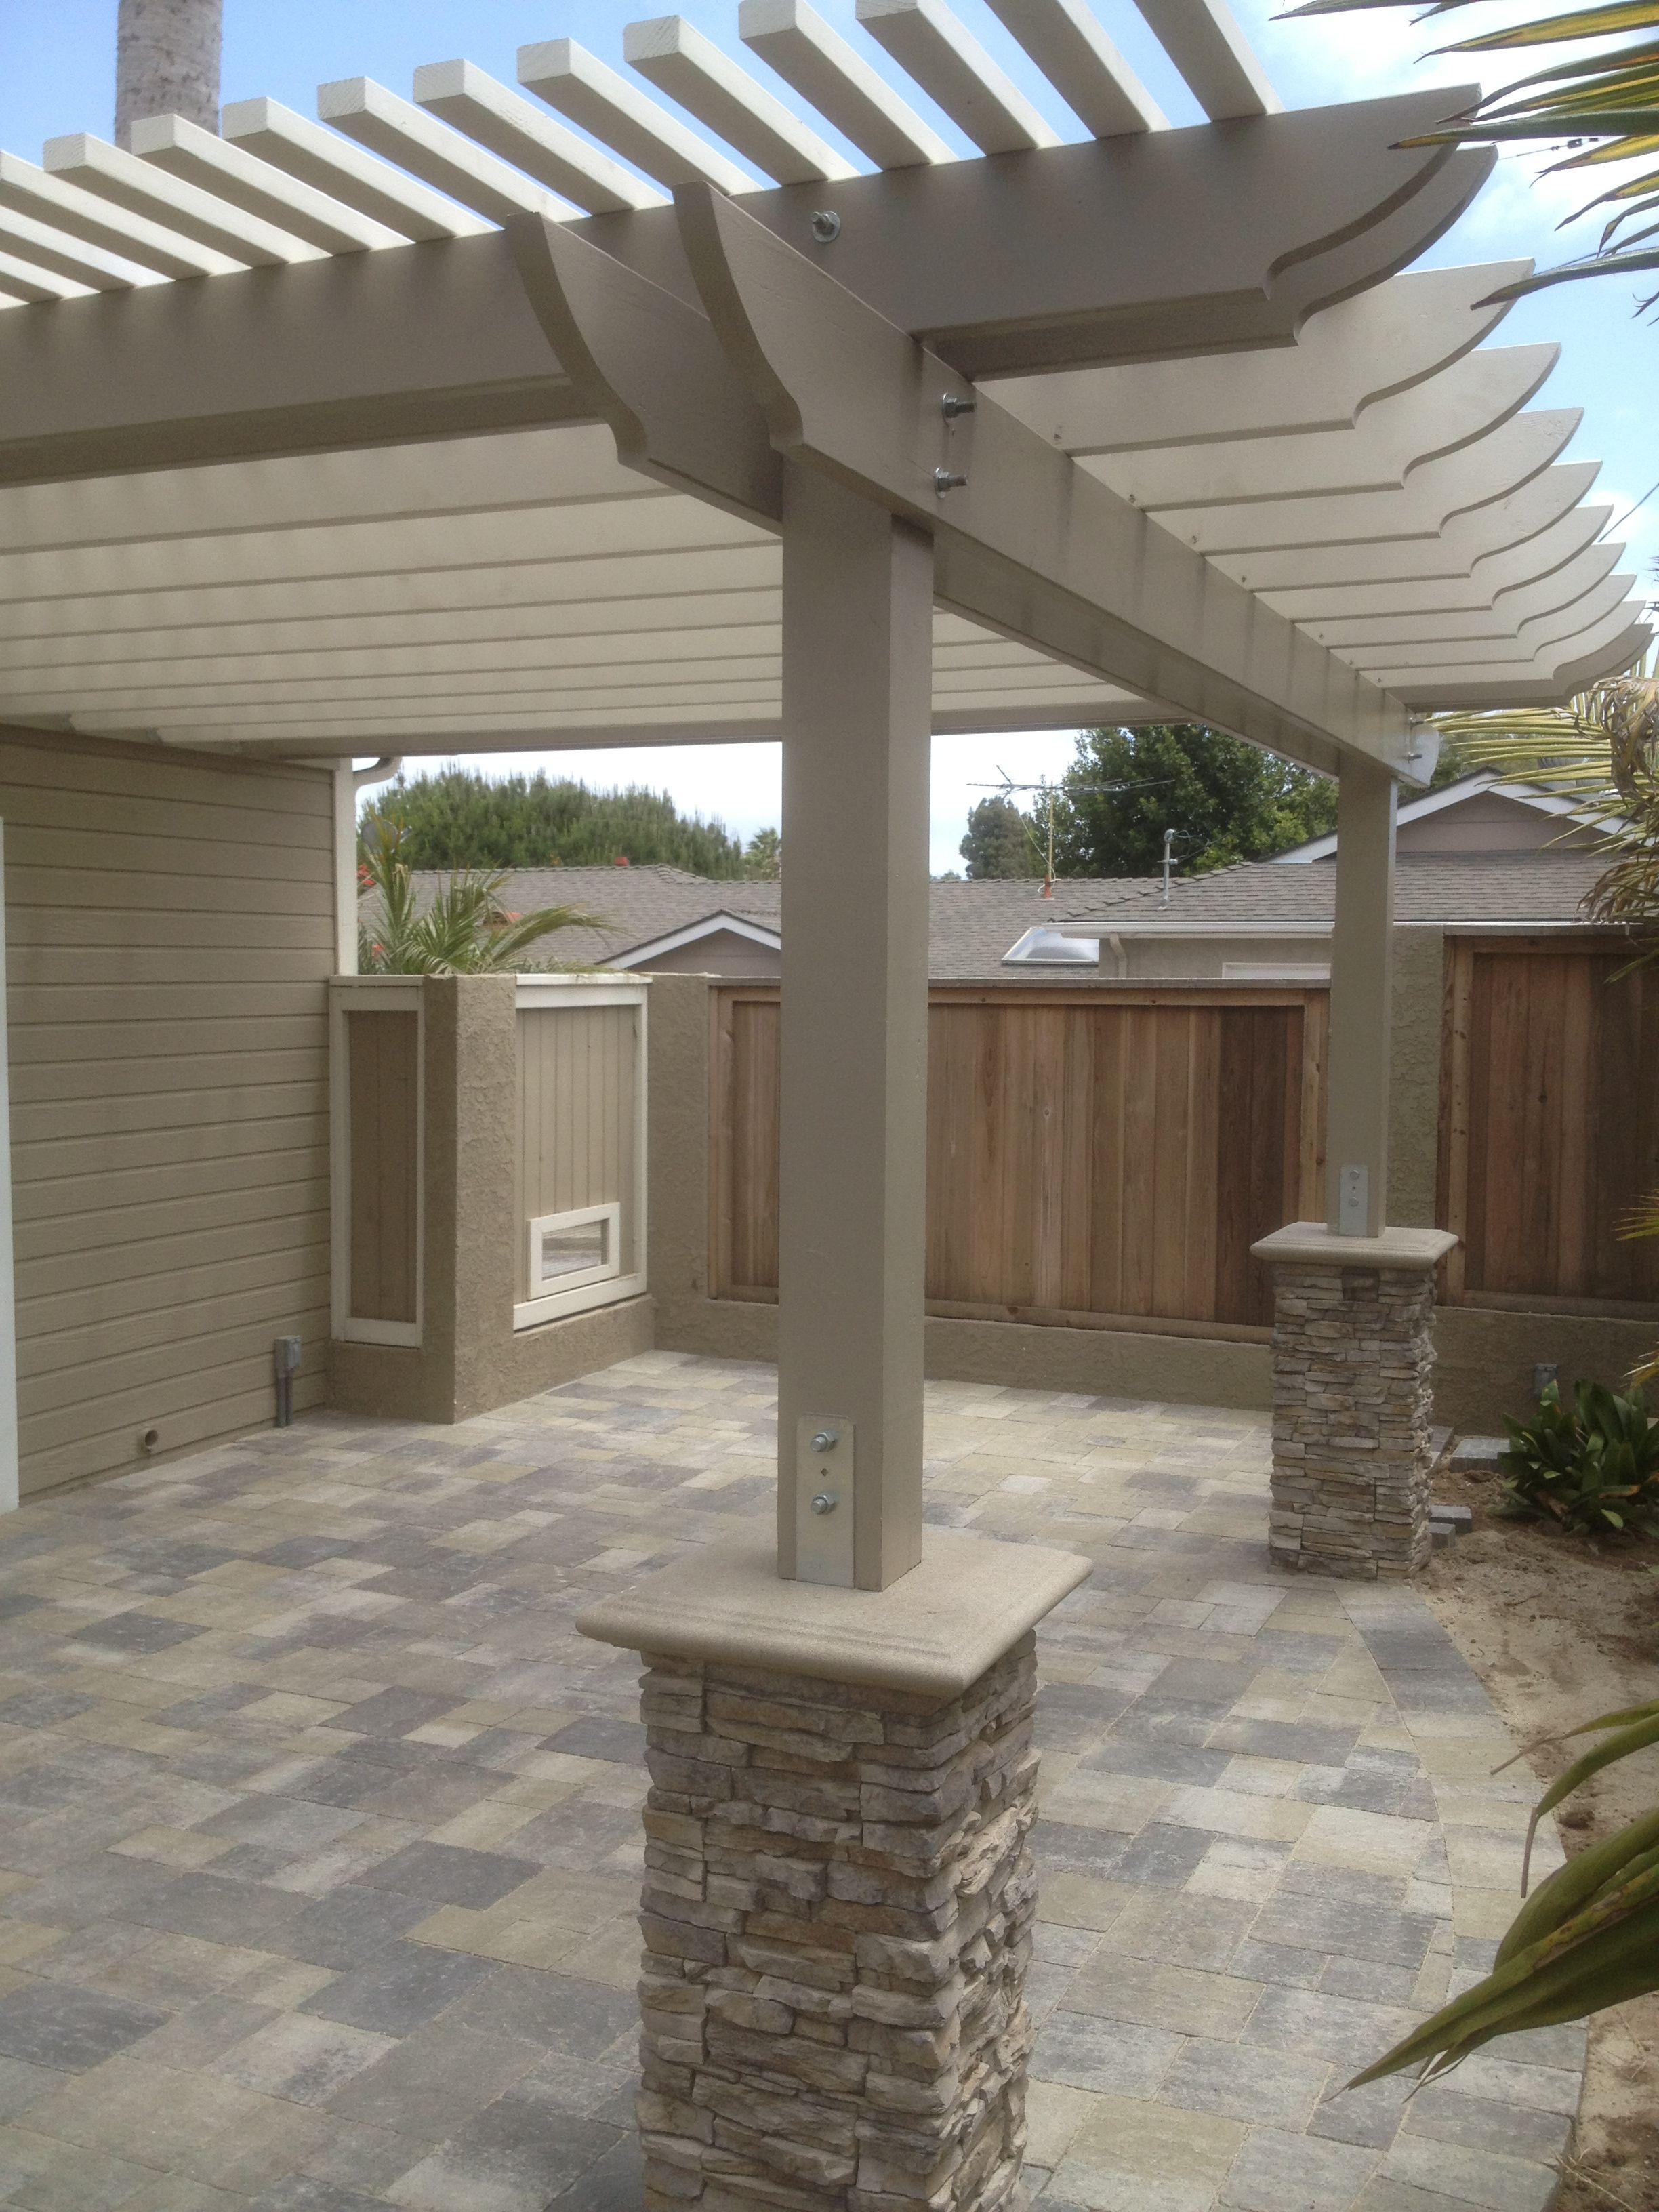 New patio with pergola we used angelus pavers in this design